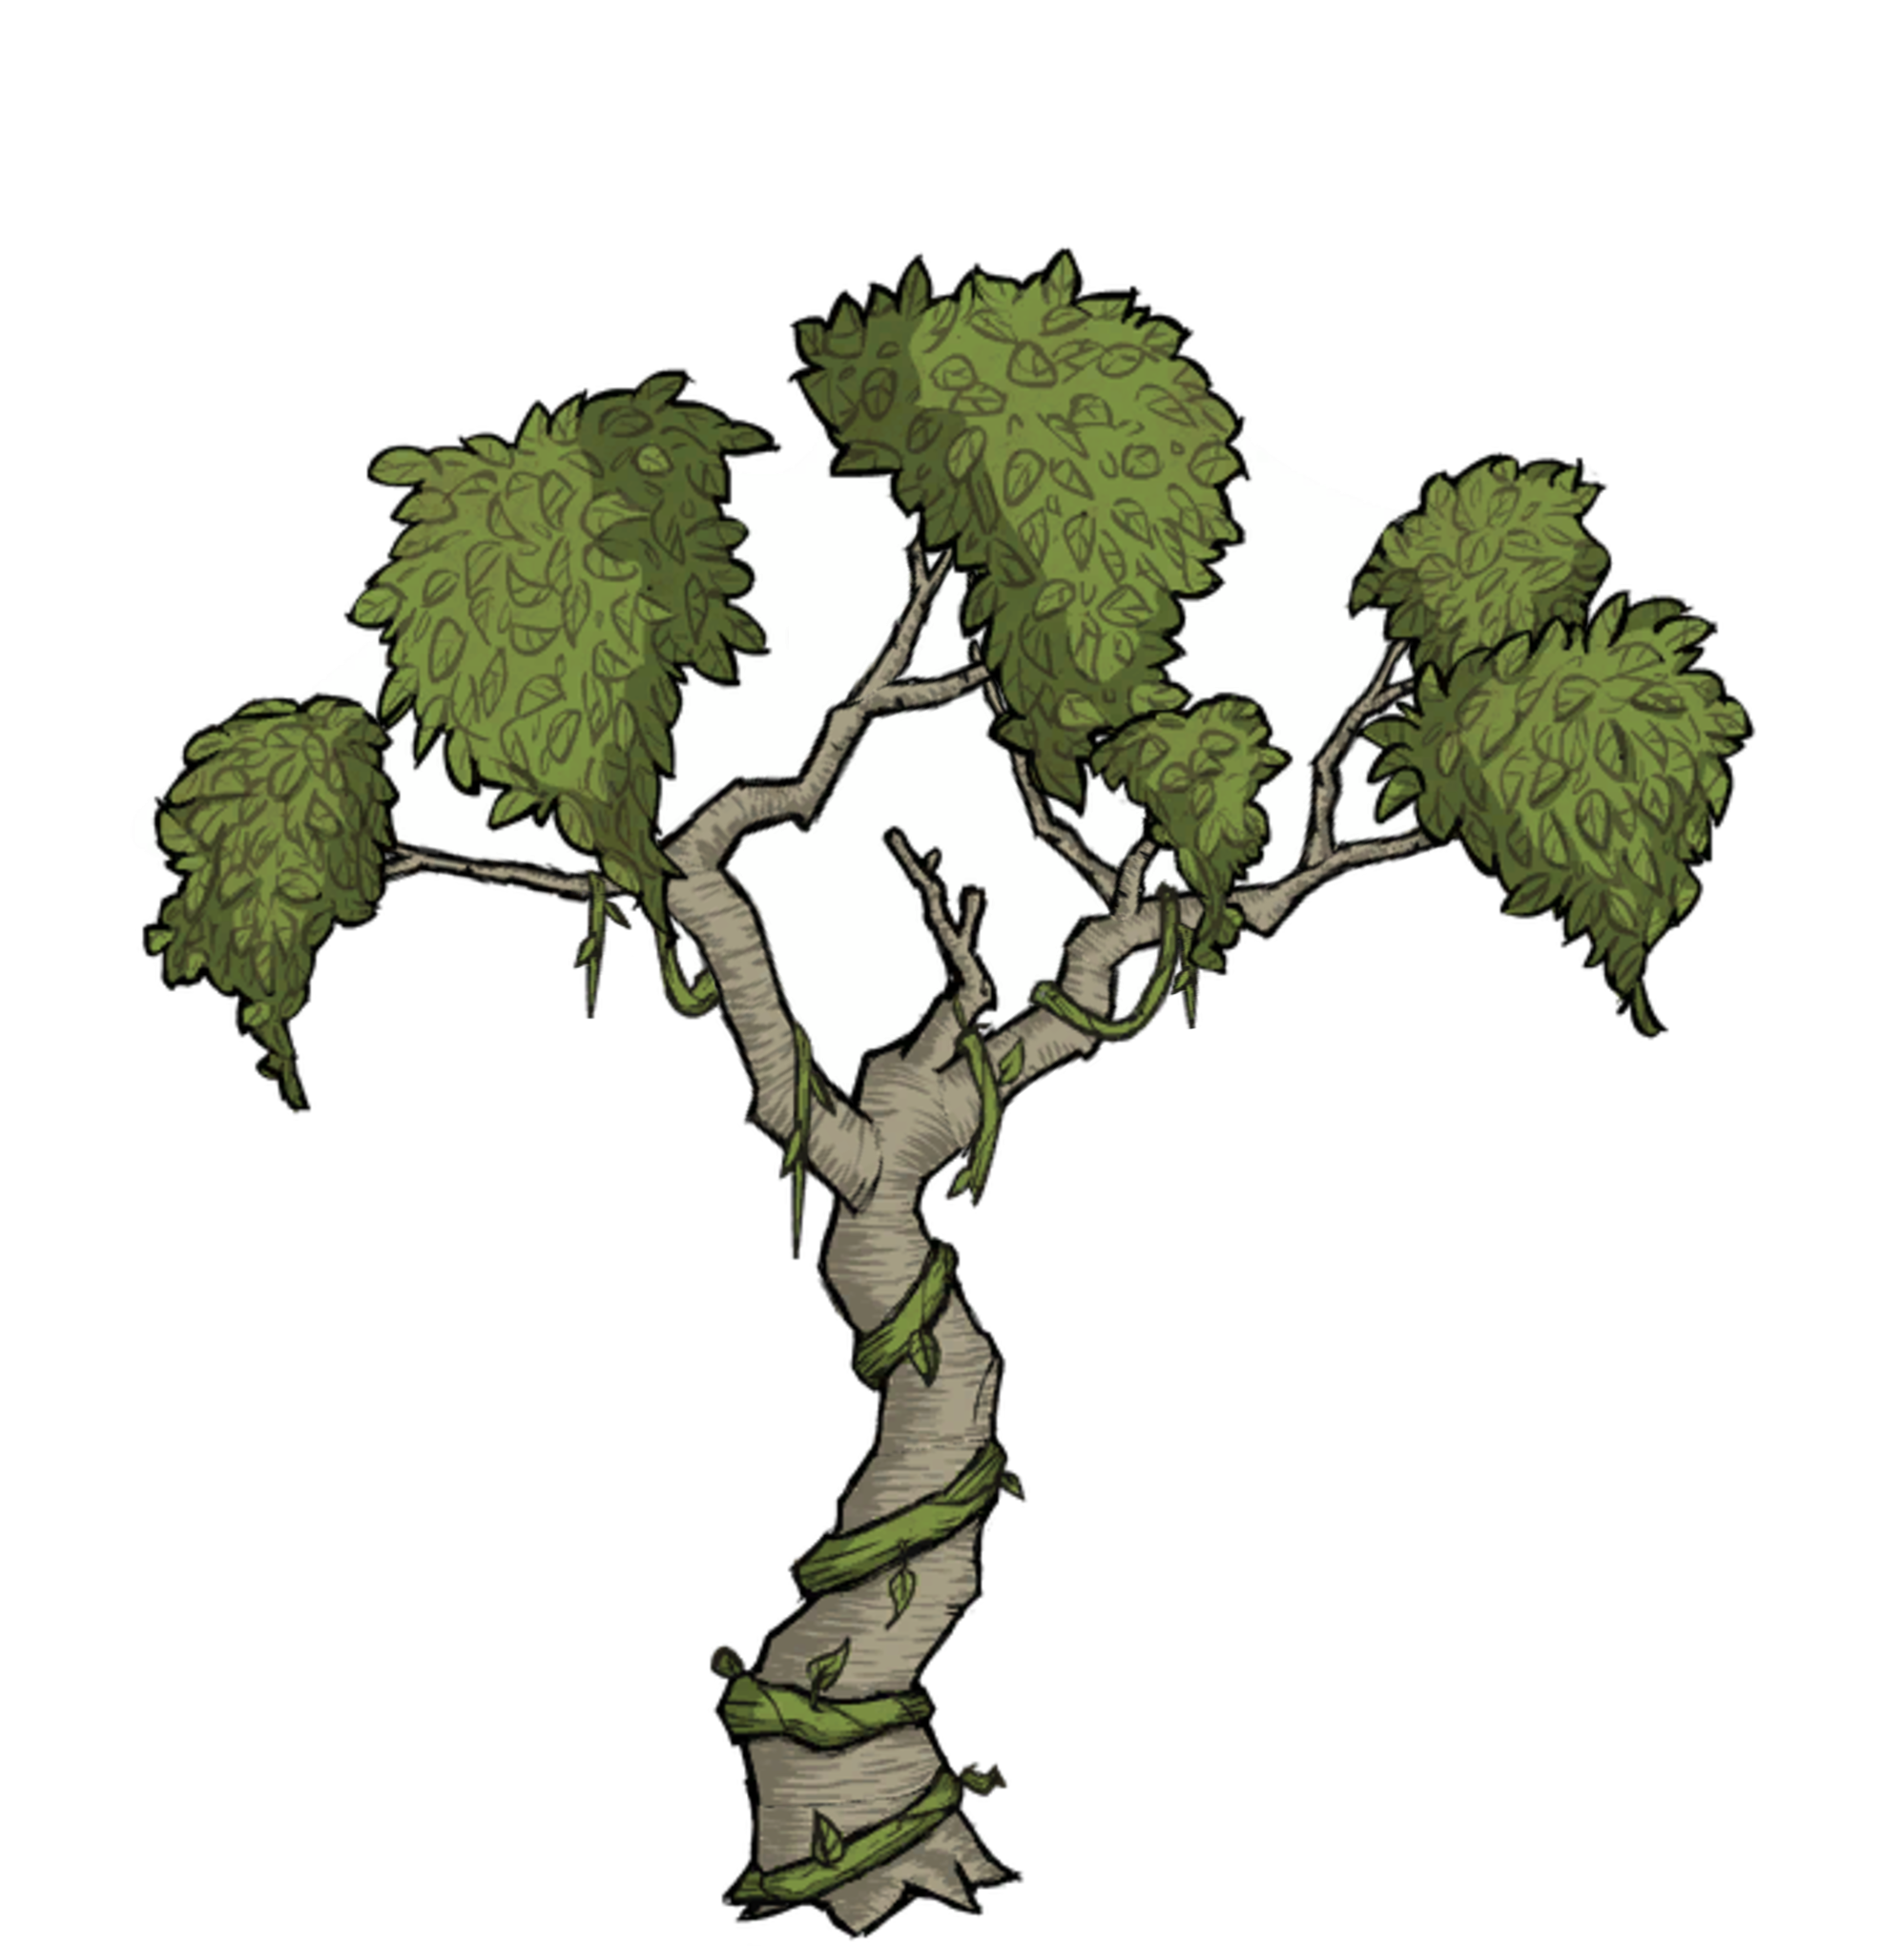 5e0e7a2c70260_treeforesttall.png.e33a91d5395a2bf36b9ab9b6a7118e69.png